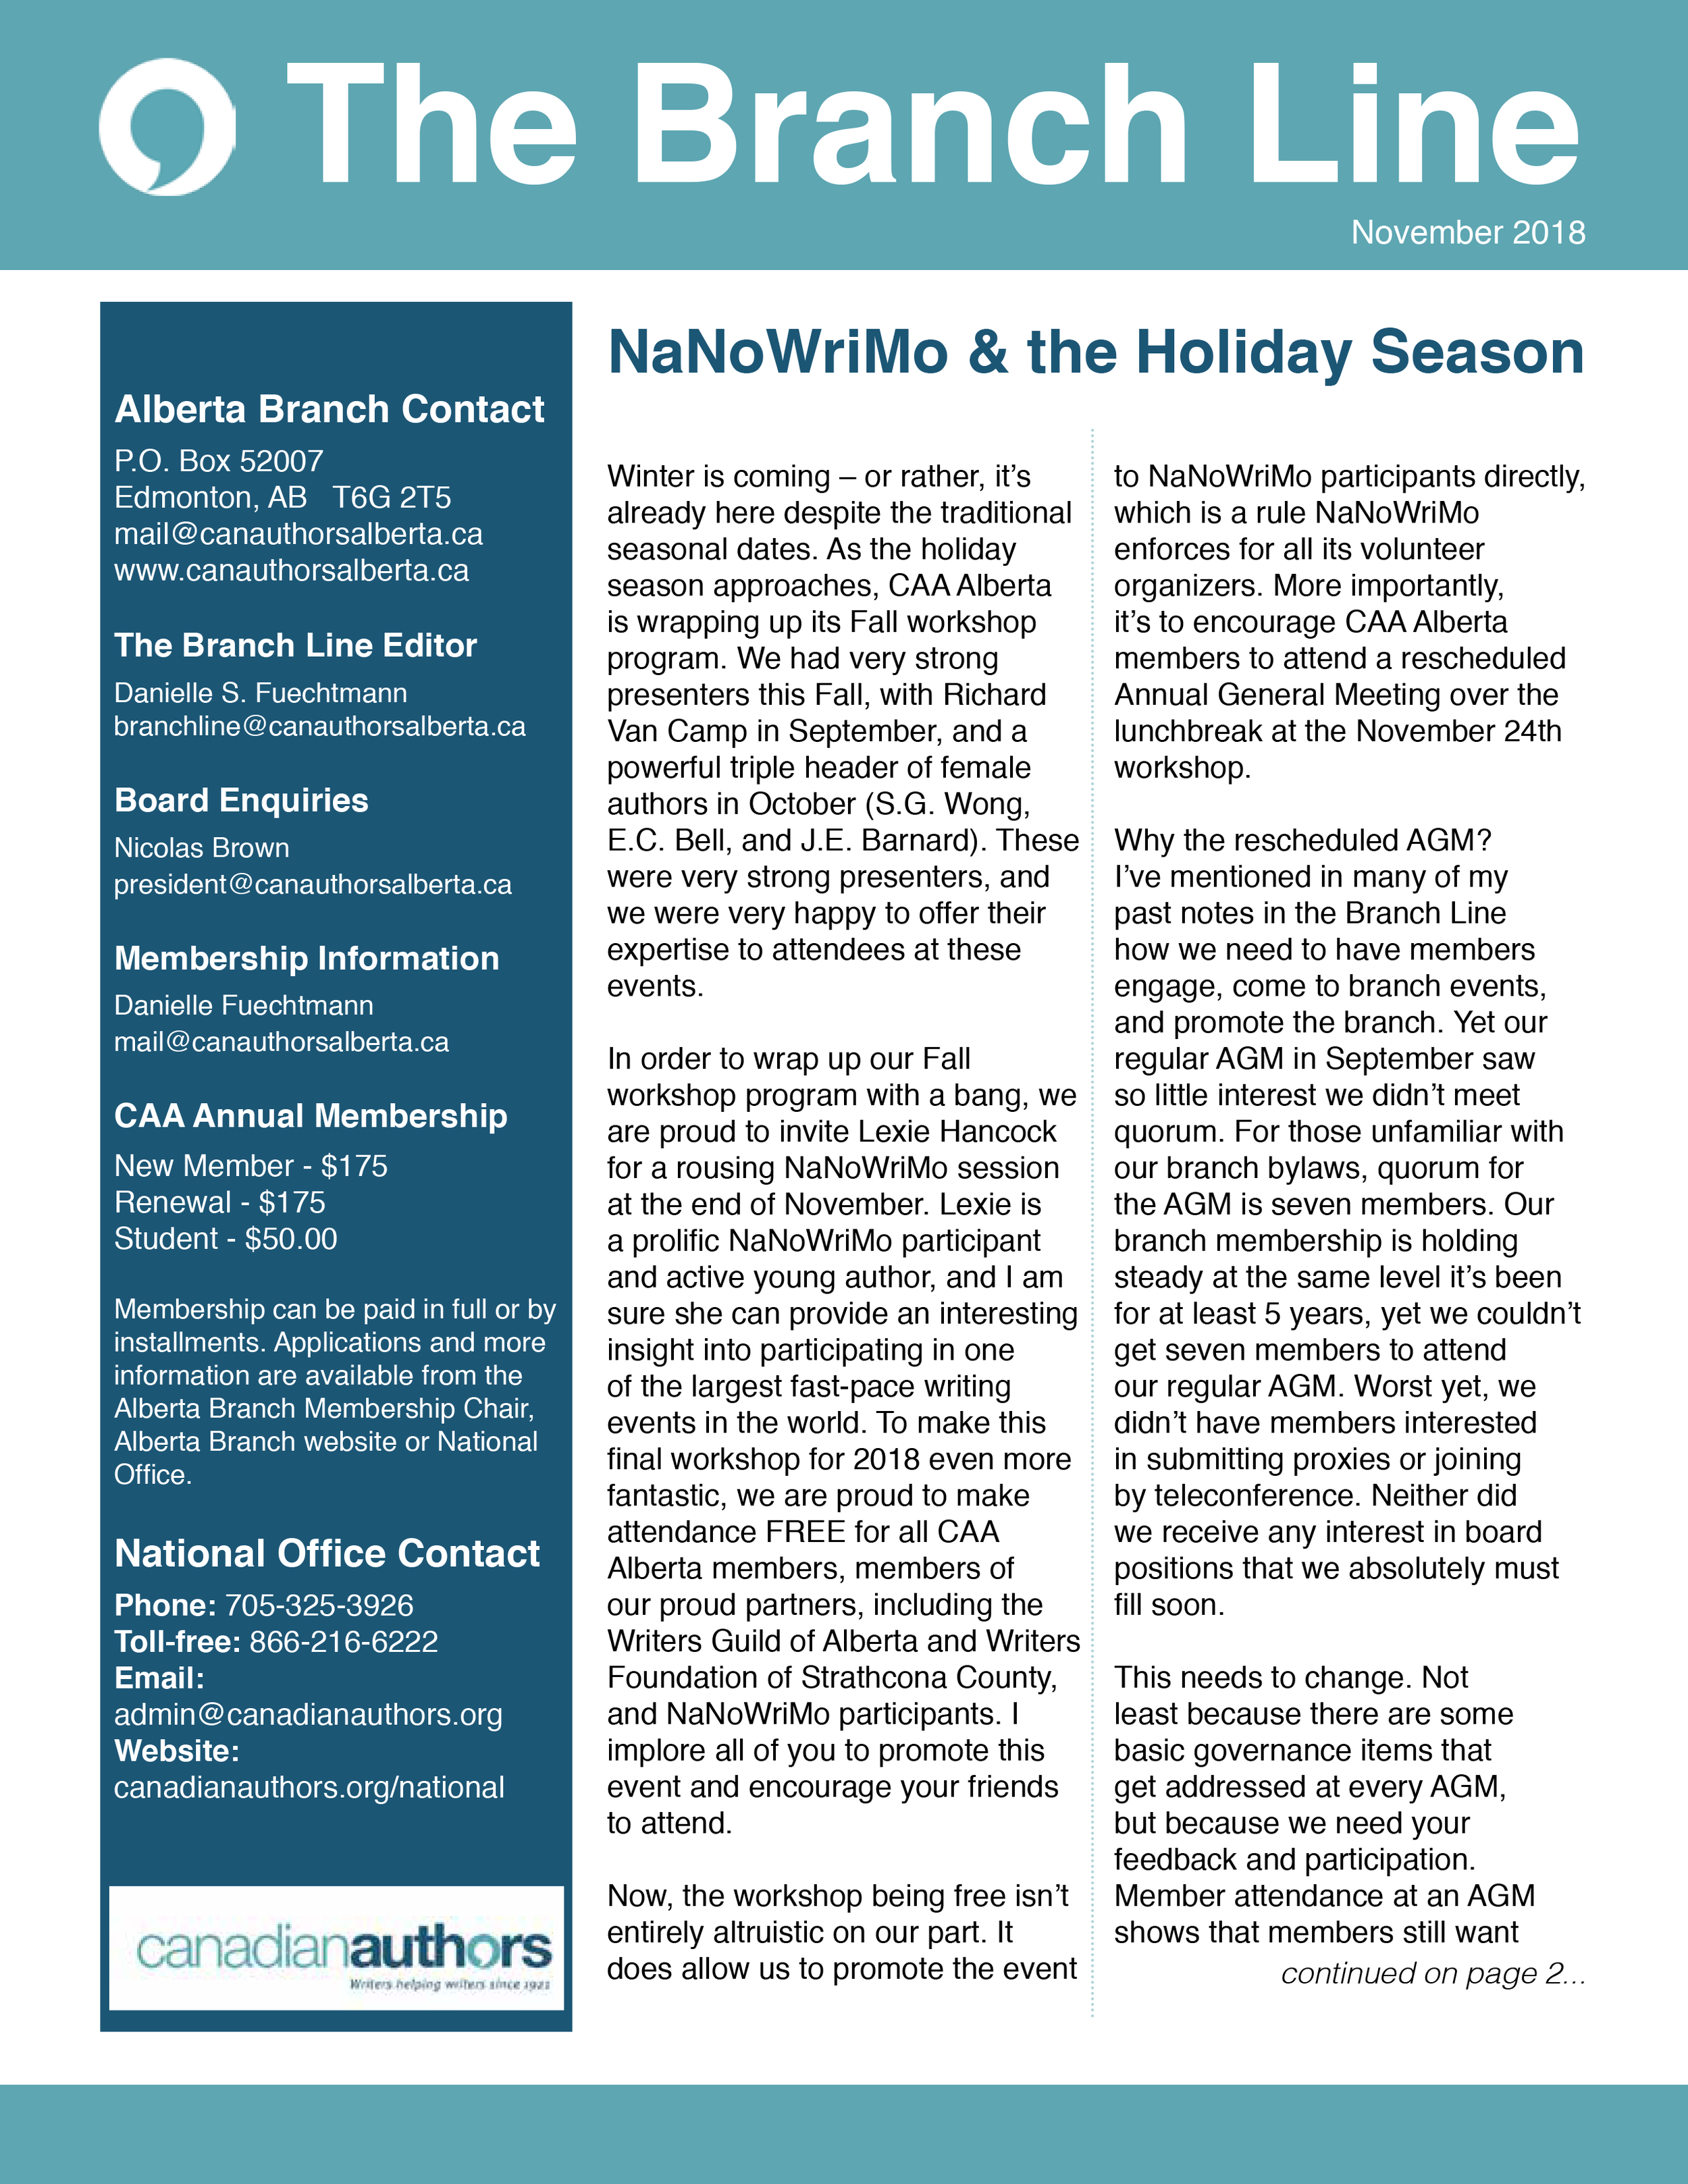 Click image to read this month's issue of Branch Line!